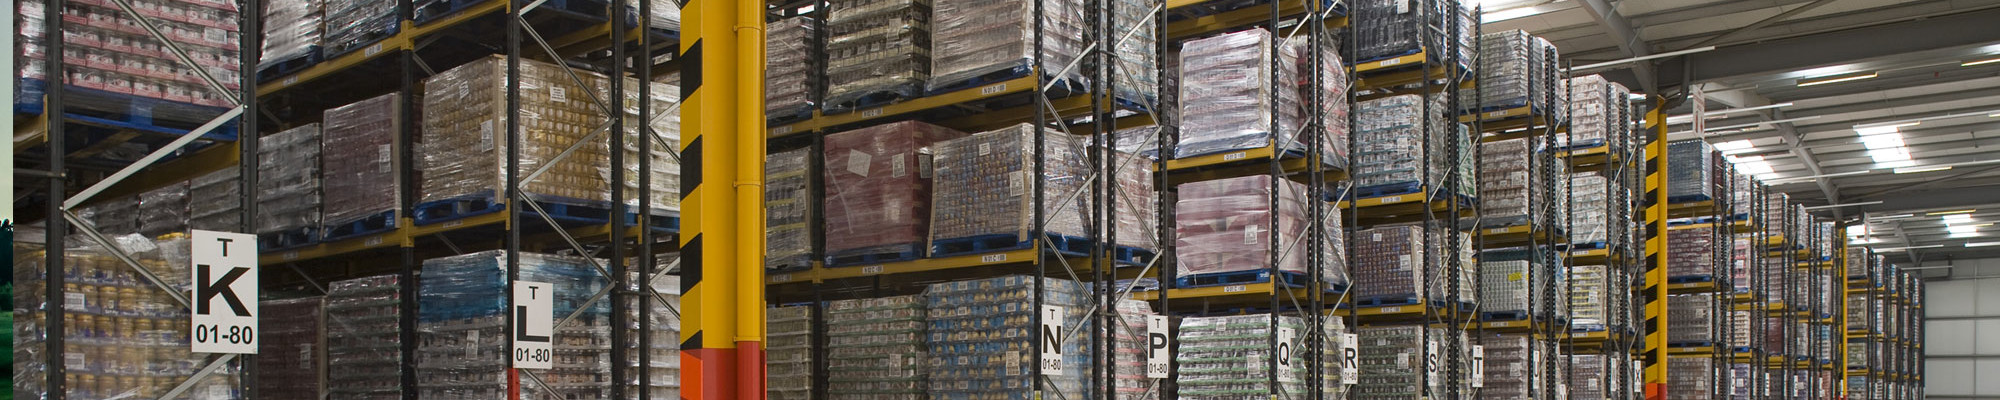 specialisied warehousing